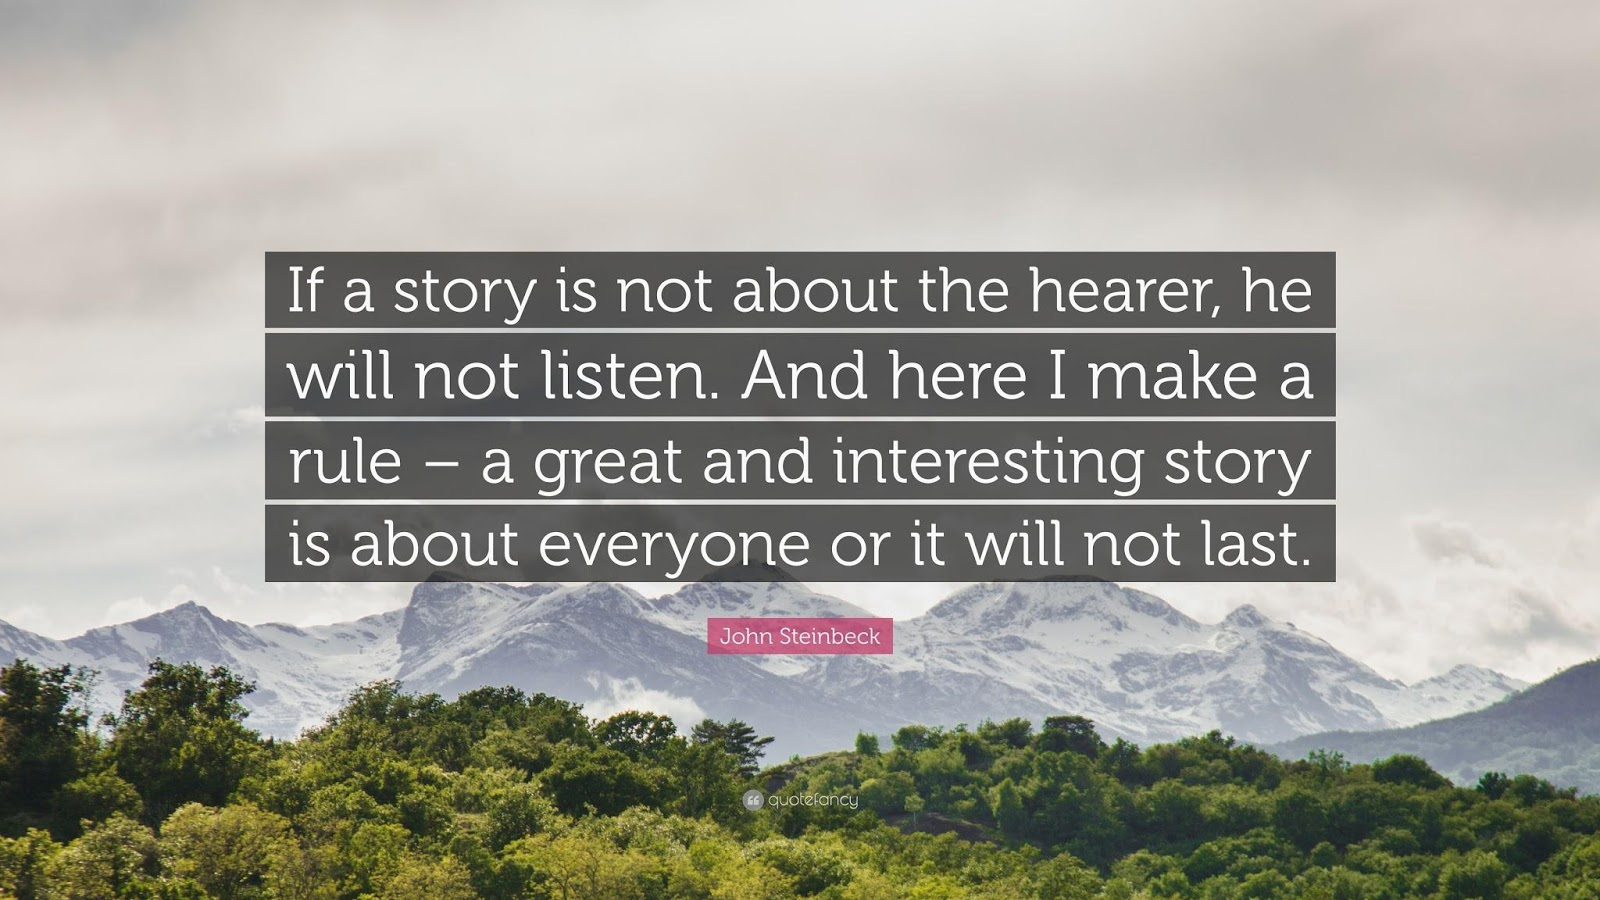 #Pixar-Storytelling Rules: Make the Audience the Hero of Your Story